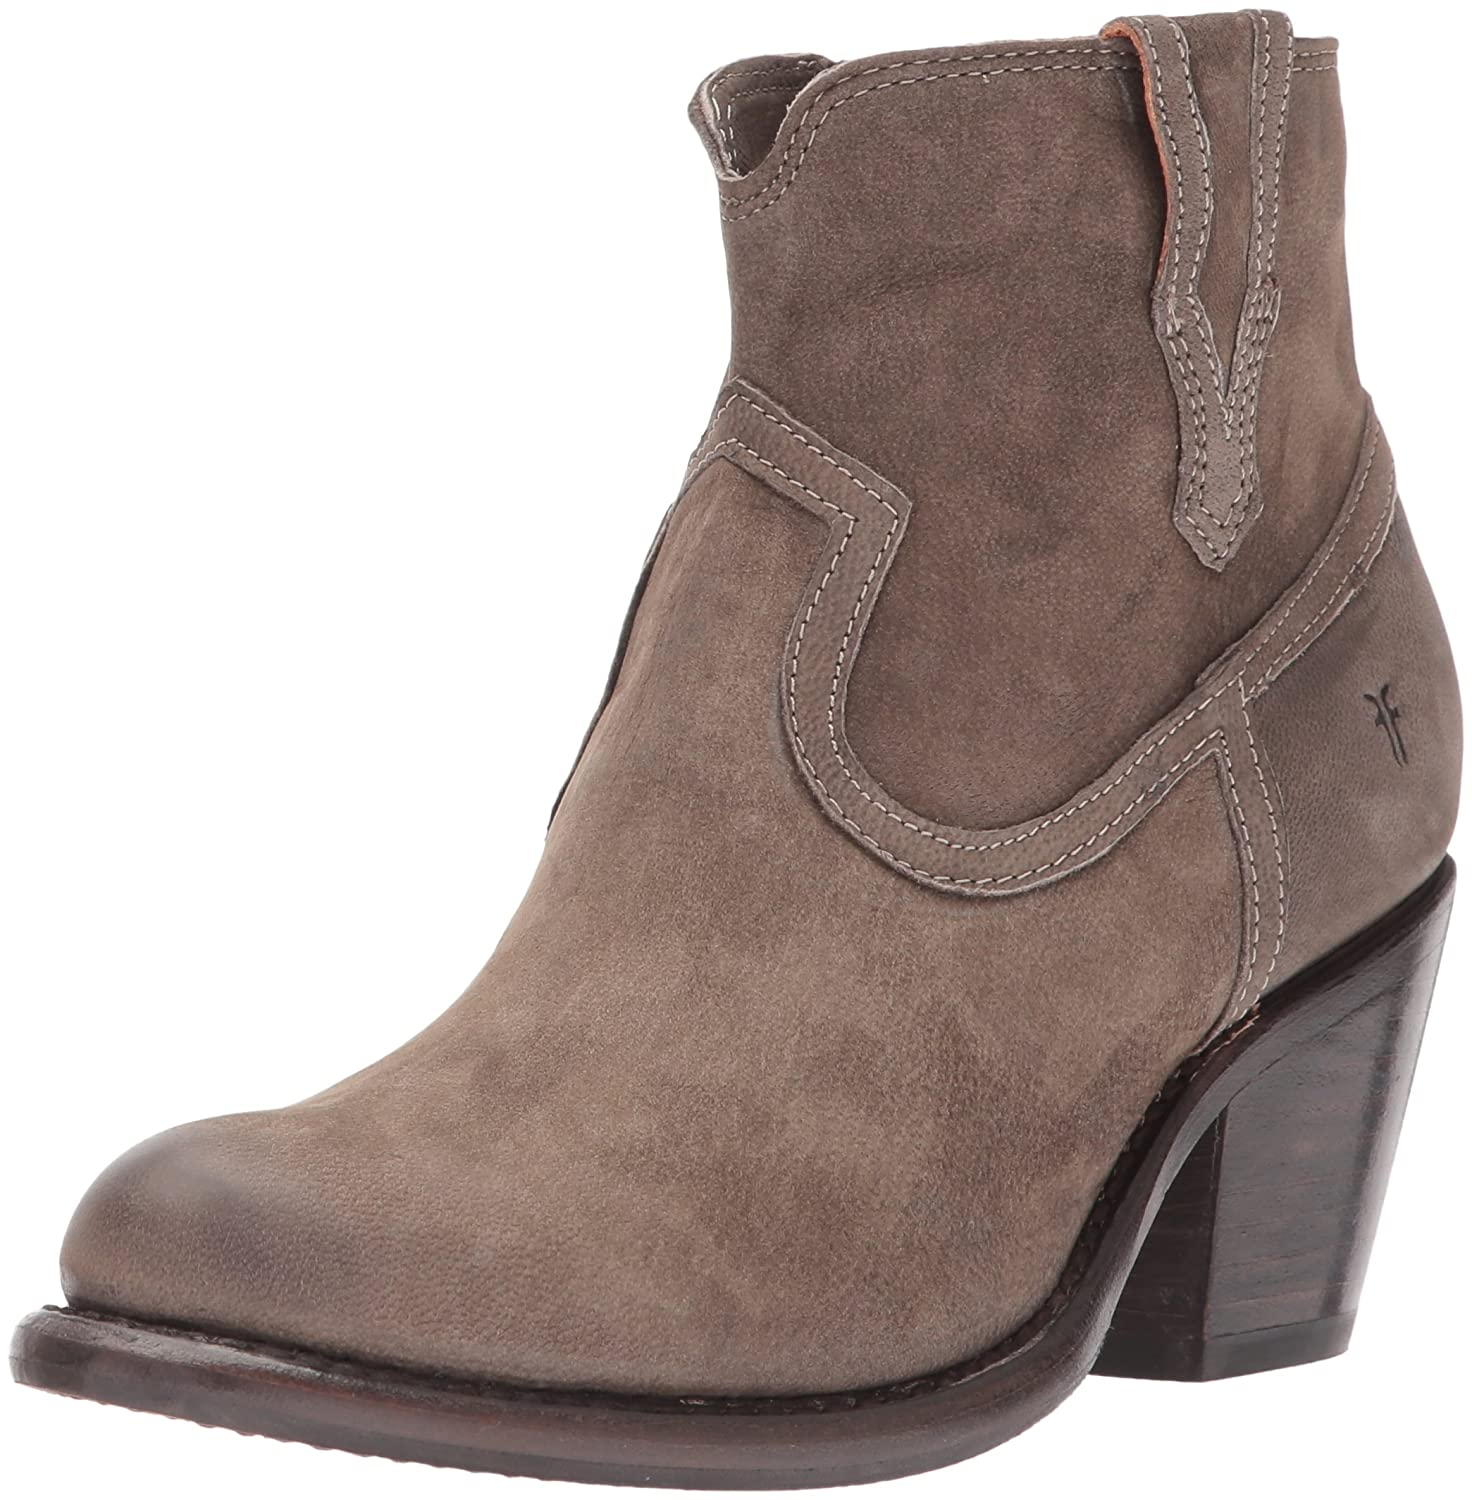 FRYE Women's Lillian Western Bootie Boot B01MT27FE6 6.5 B(M) US|Grey Nubuck